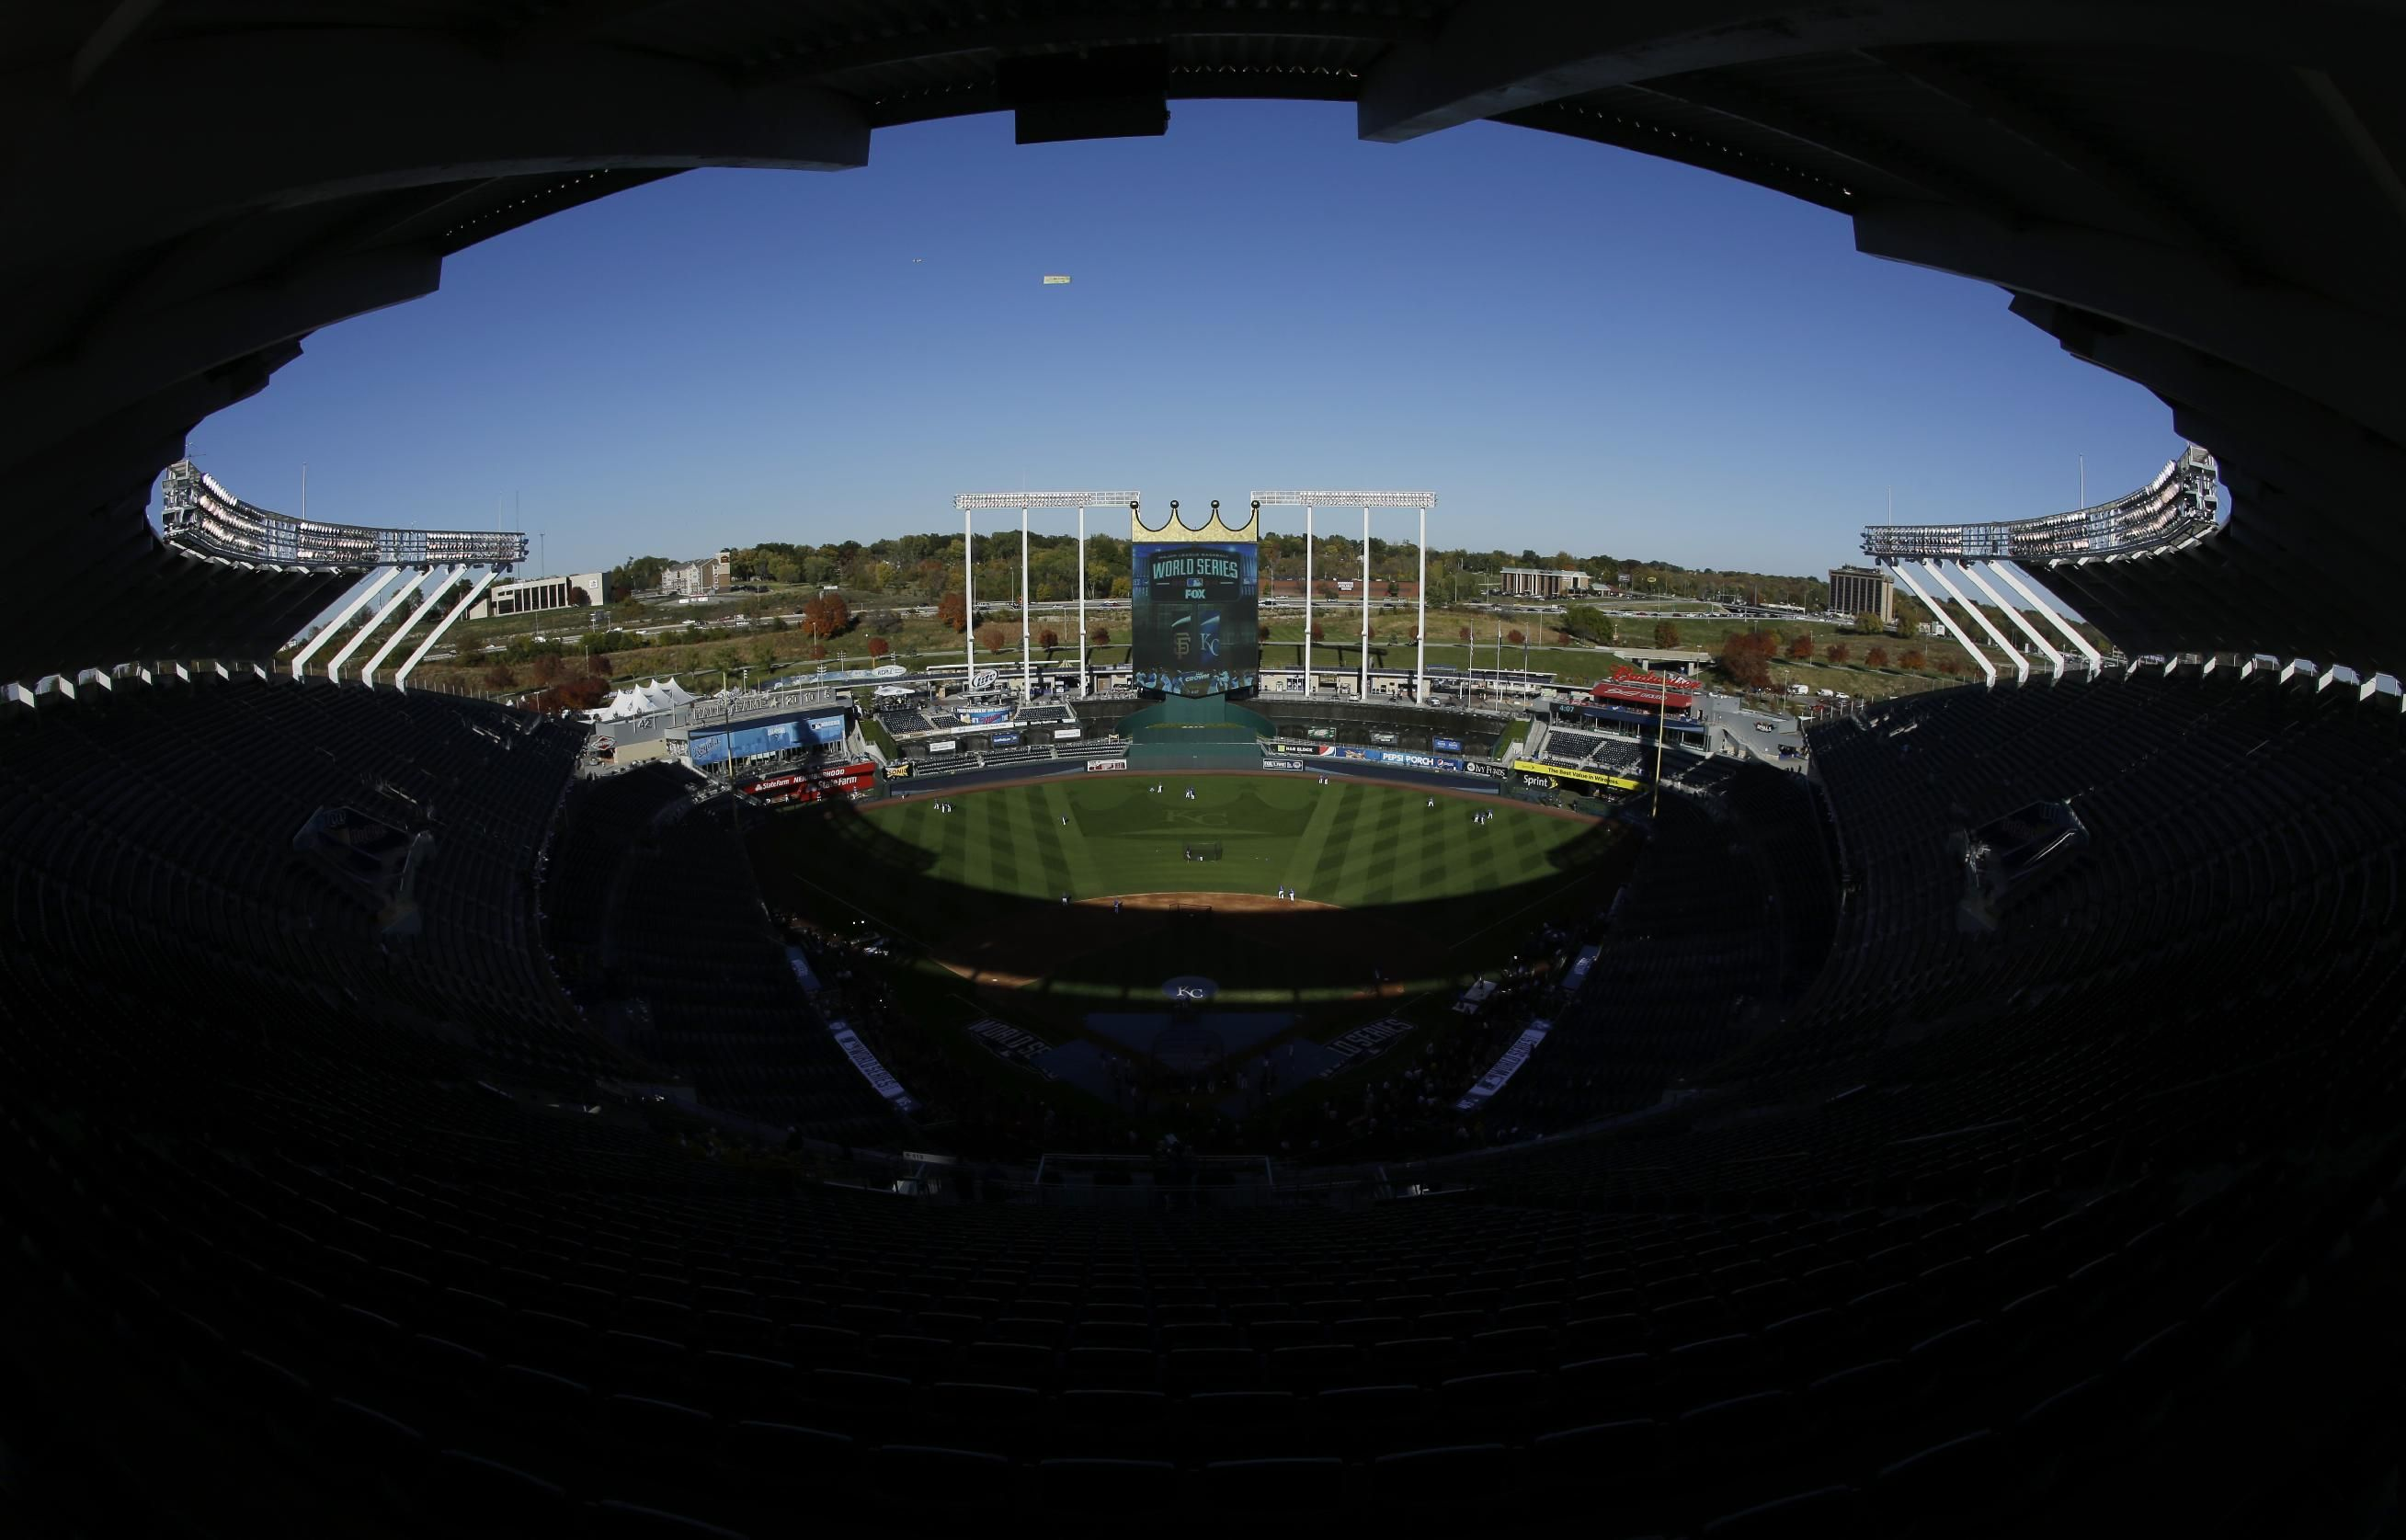 Kansas City Royals warm up in Kauffman Stadium before Game 1 of baseball's World Series against the San Francisco Giants Tuesday, Oct. 21, 2014, in Kansas City, Mo. (AP Photo/Jeff Roberson)